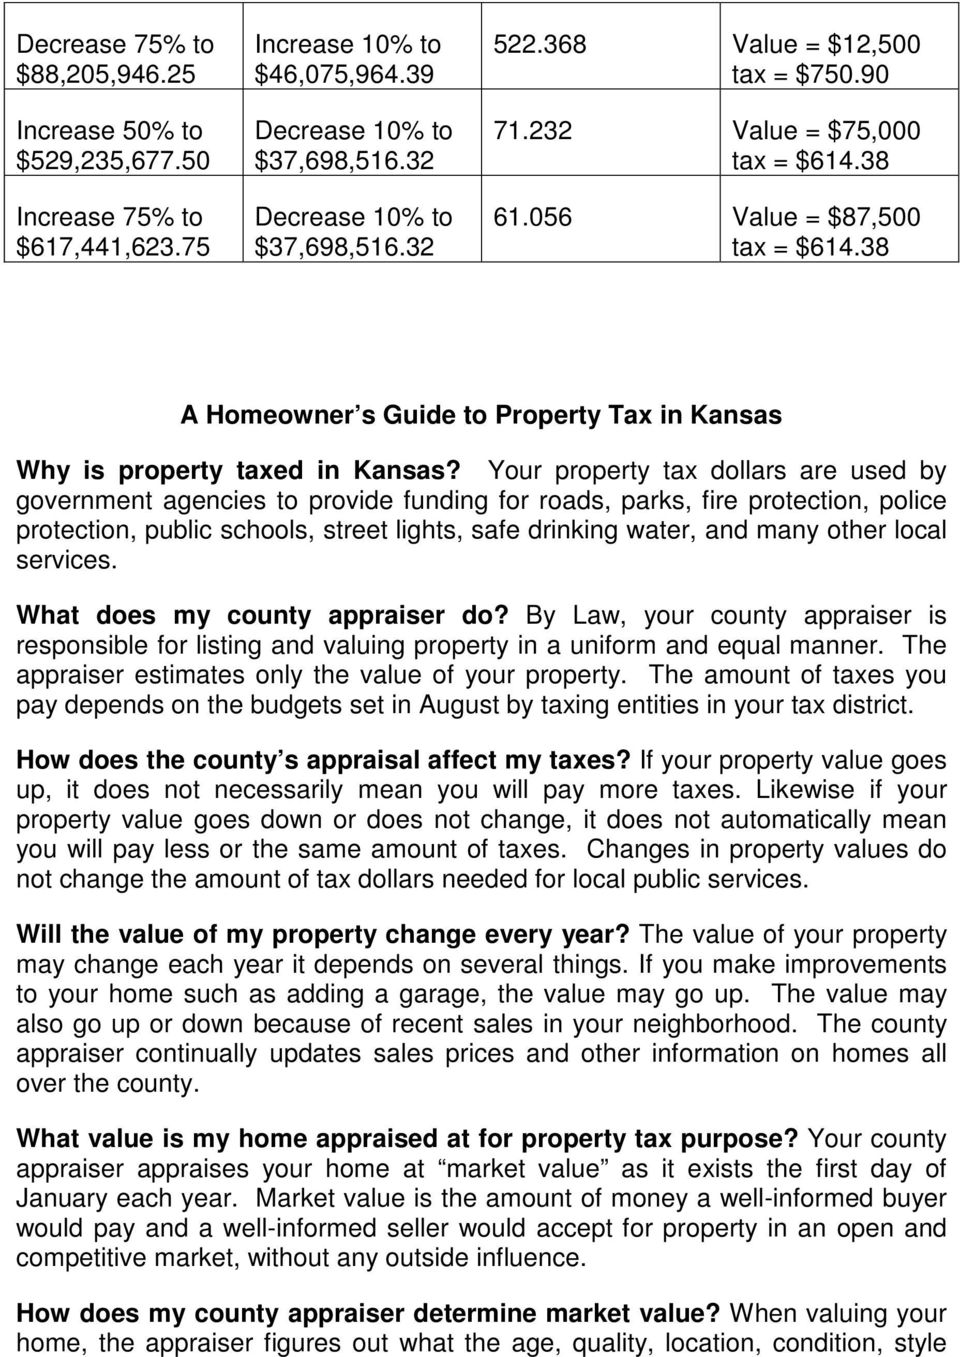 Your property tax dollars are used by government agencies to provide funding for roads, parks, fire protection, police protection, public schools, street lights, safe drinking water, and many other